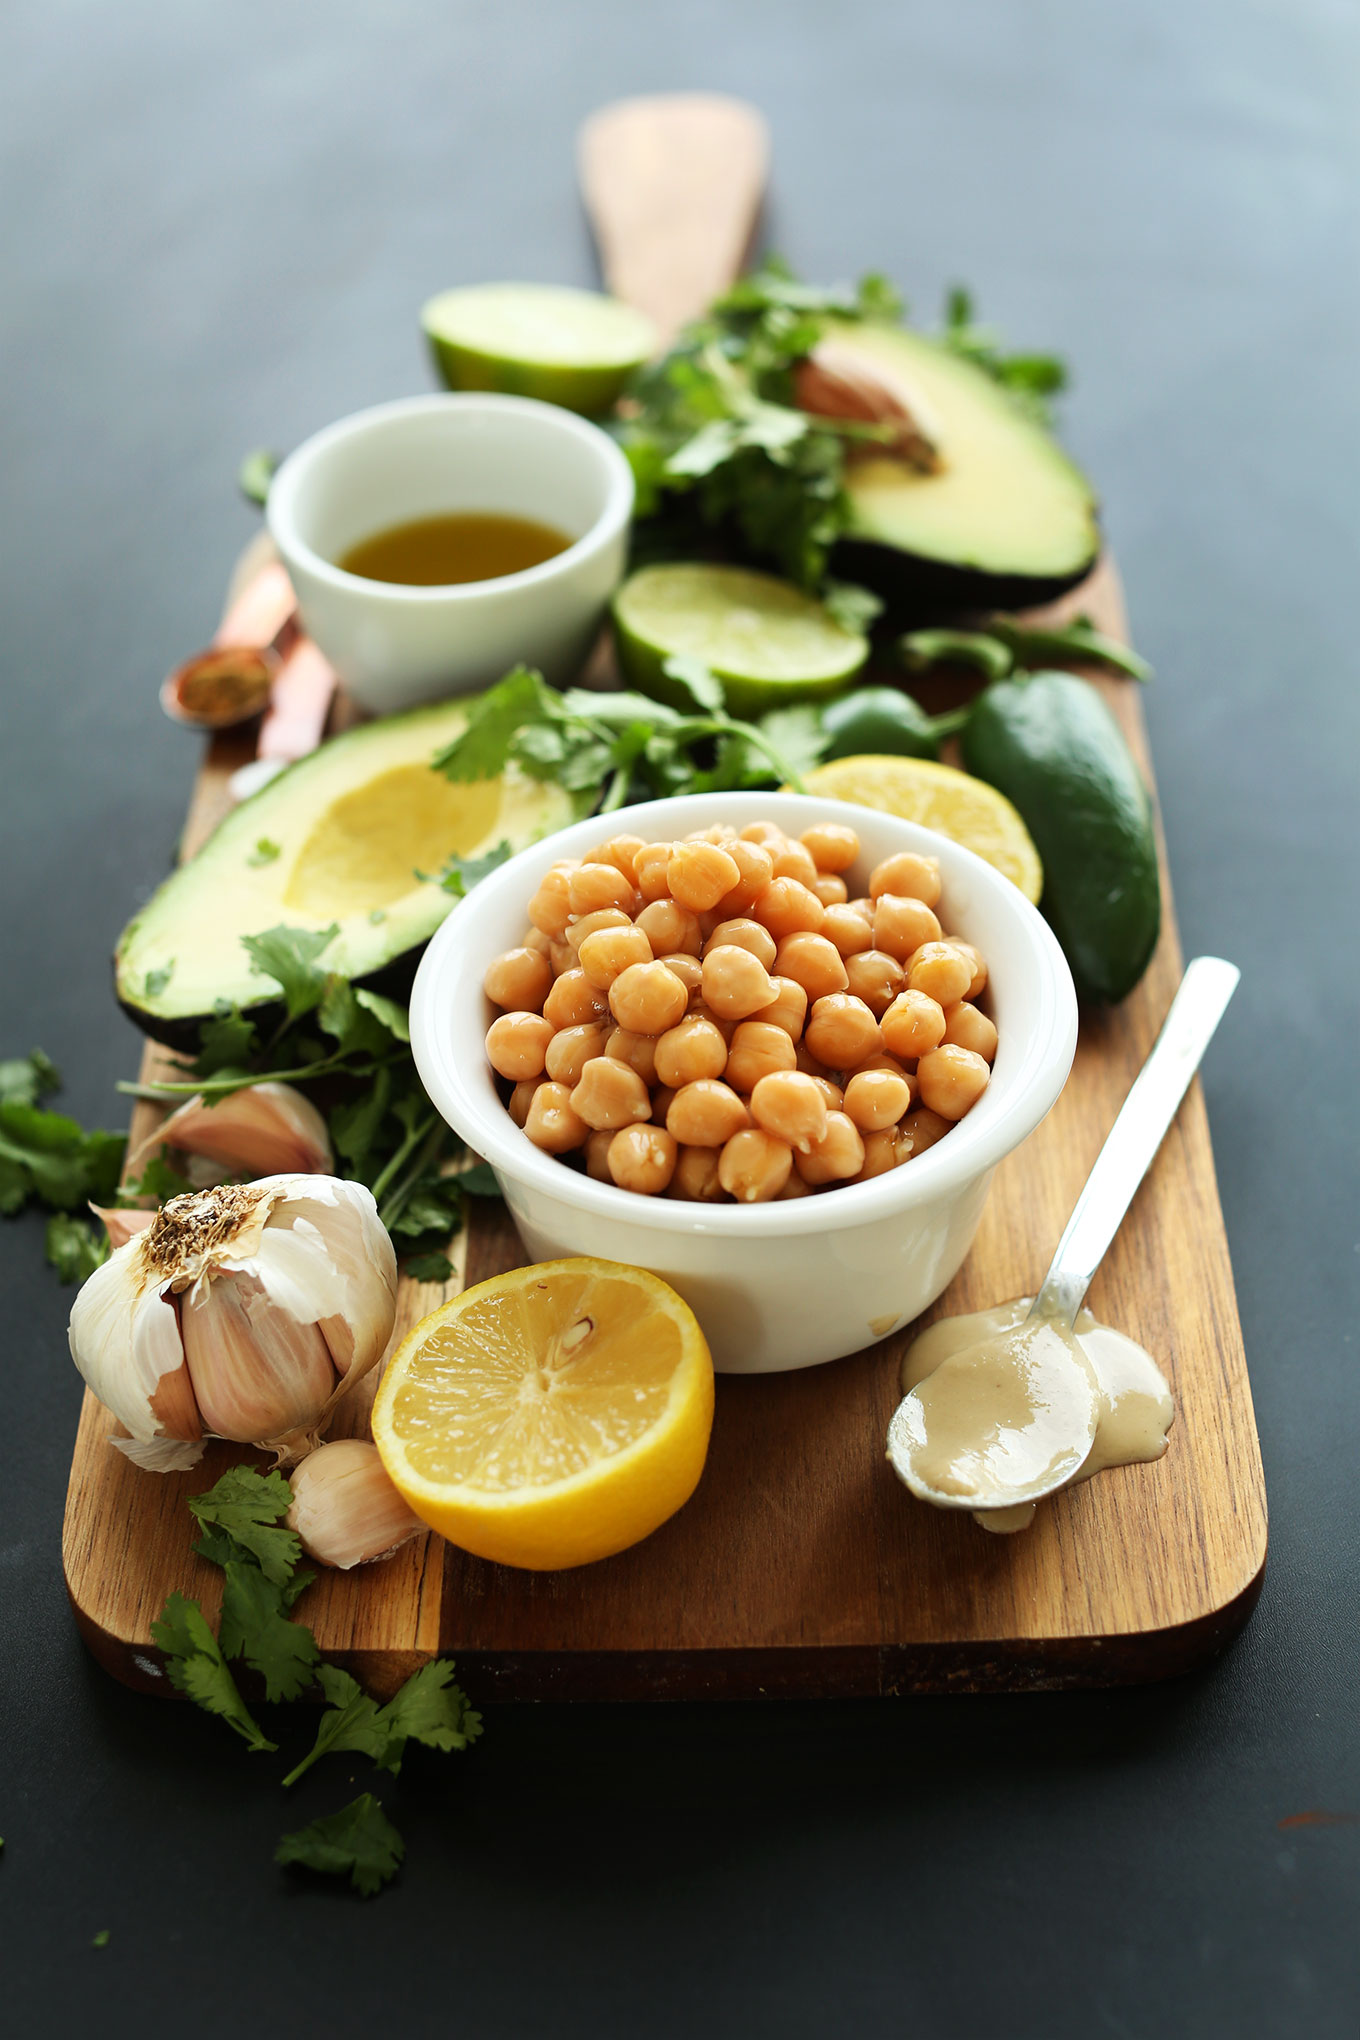 Wood board with chickpeas and other ingredients for making homemade Creamy Roasted Jalapeno Hummus